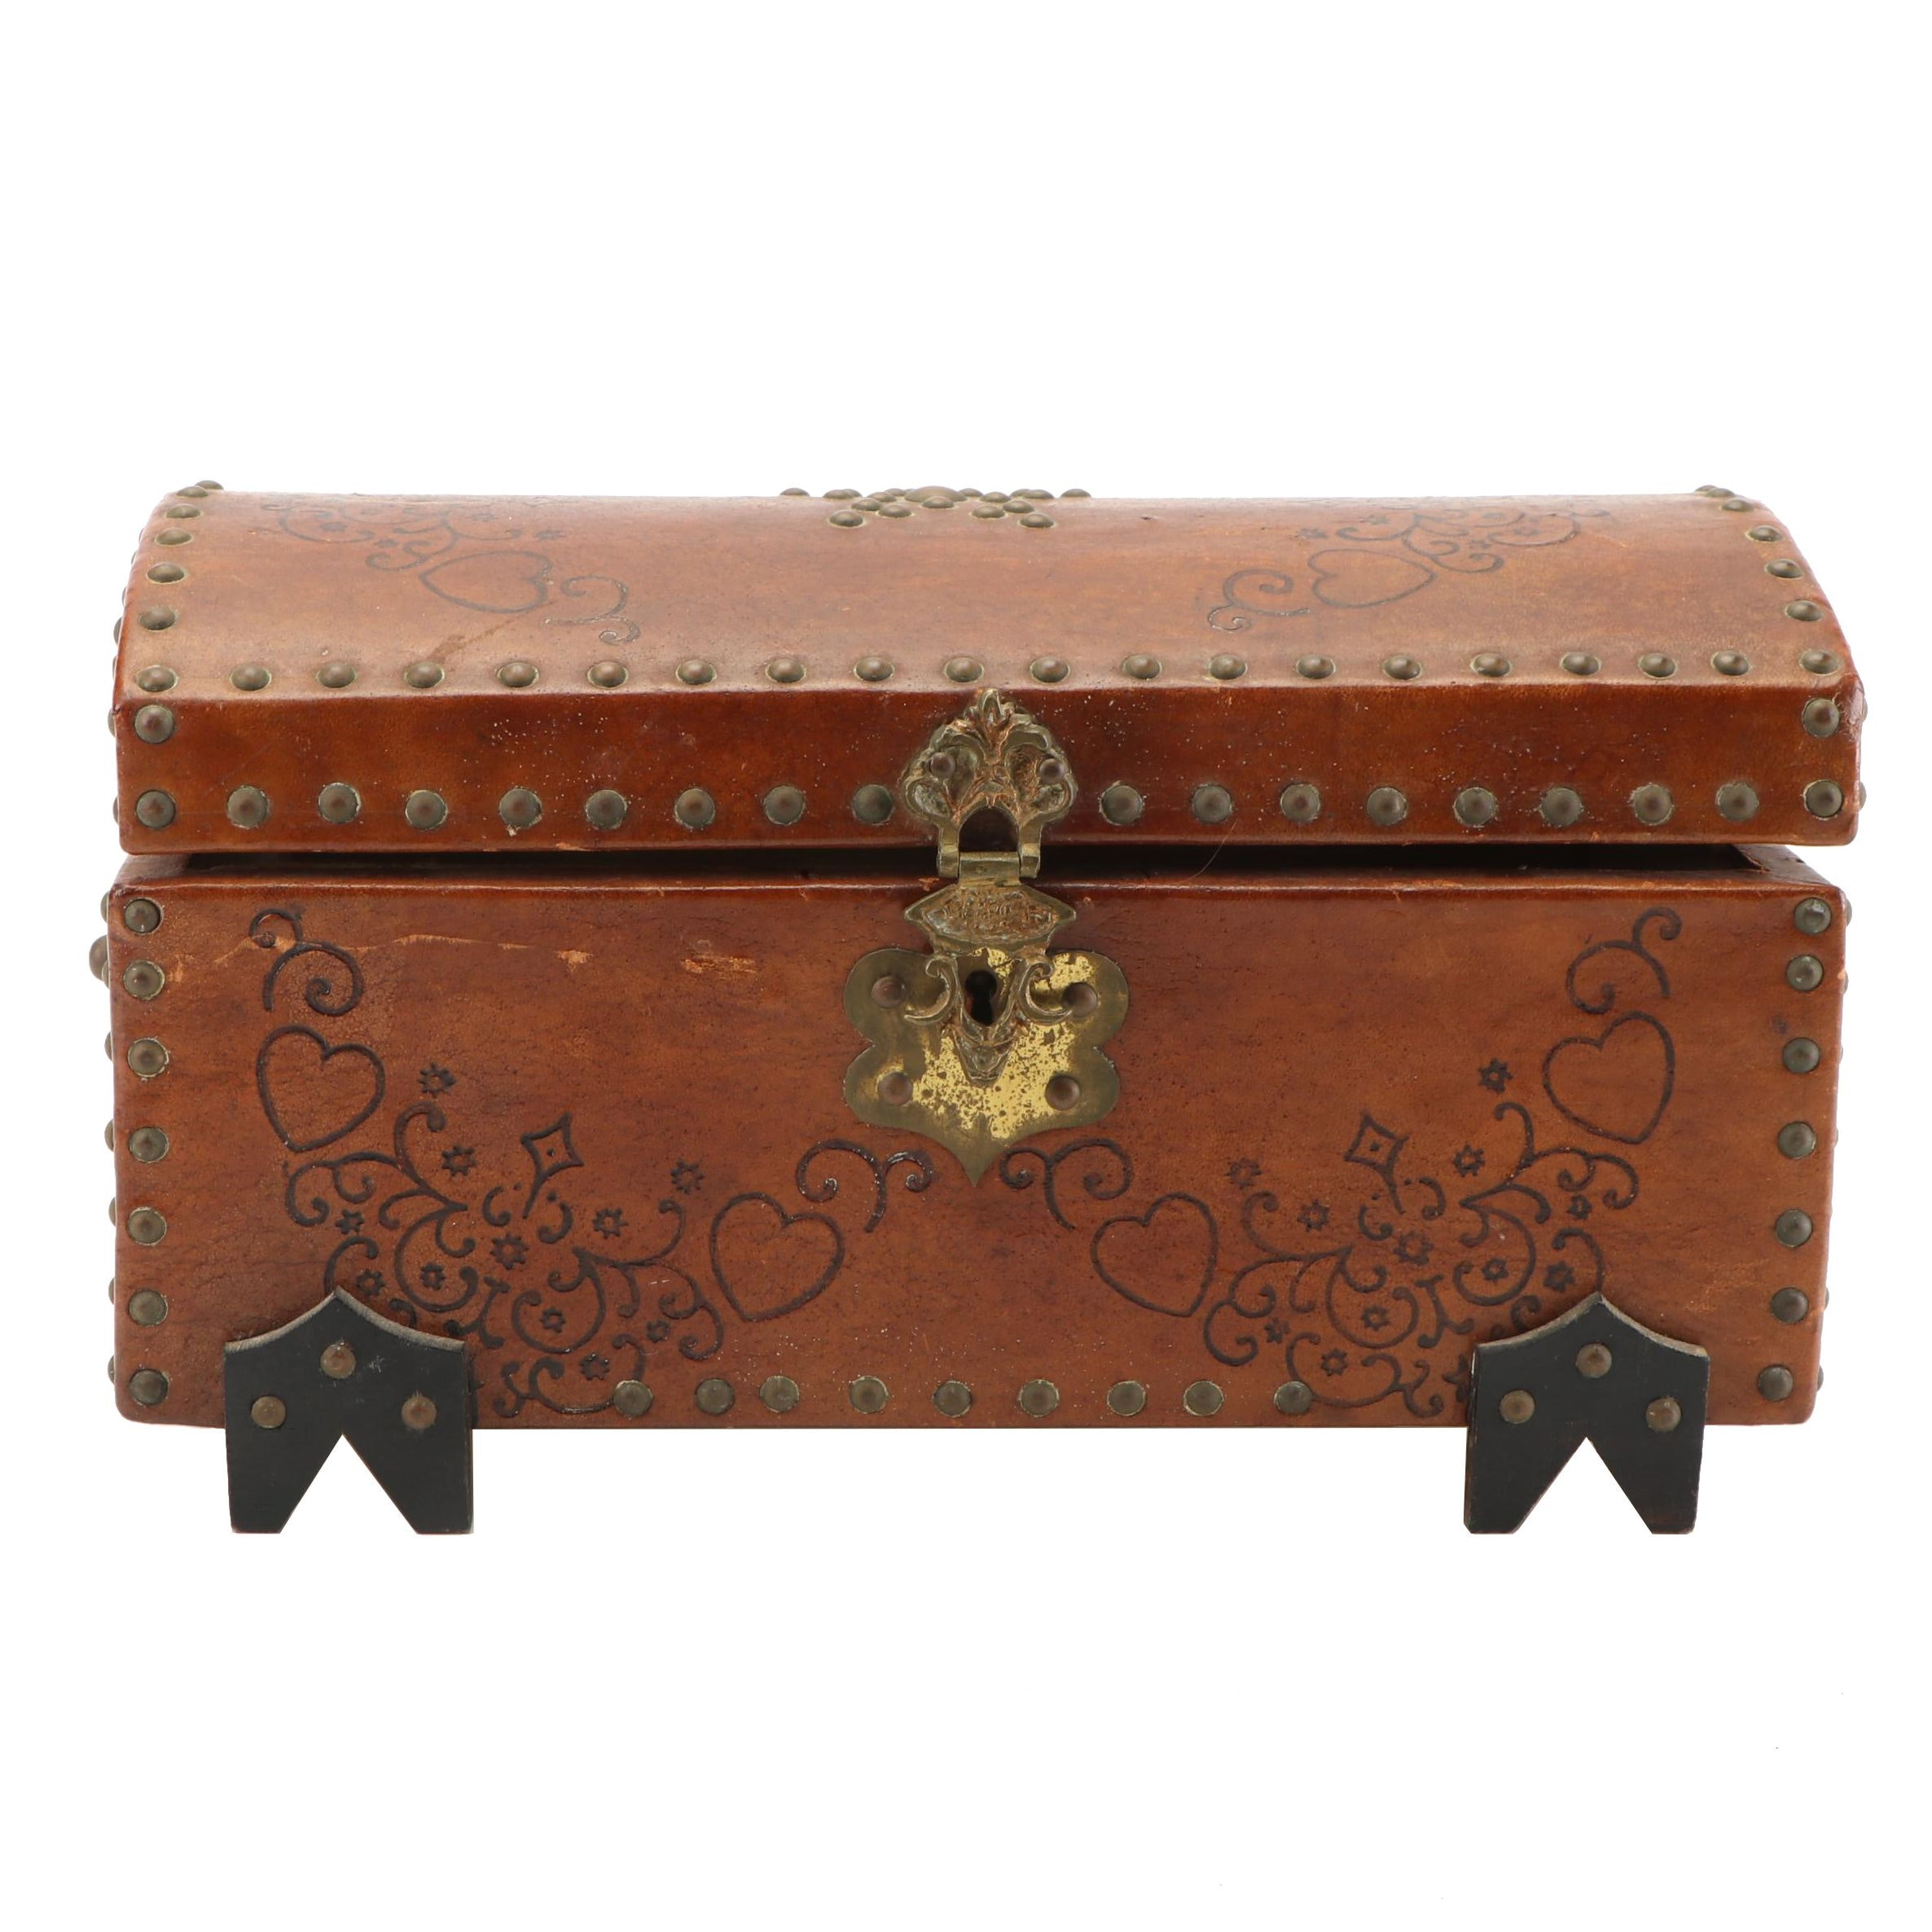 Small Leather Chest with Metal Accents, Vintage